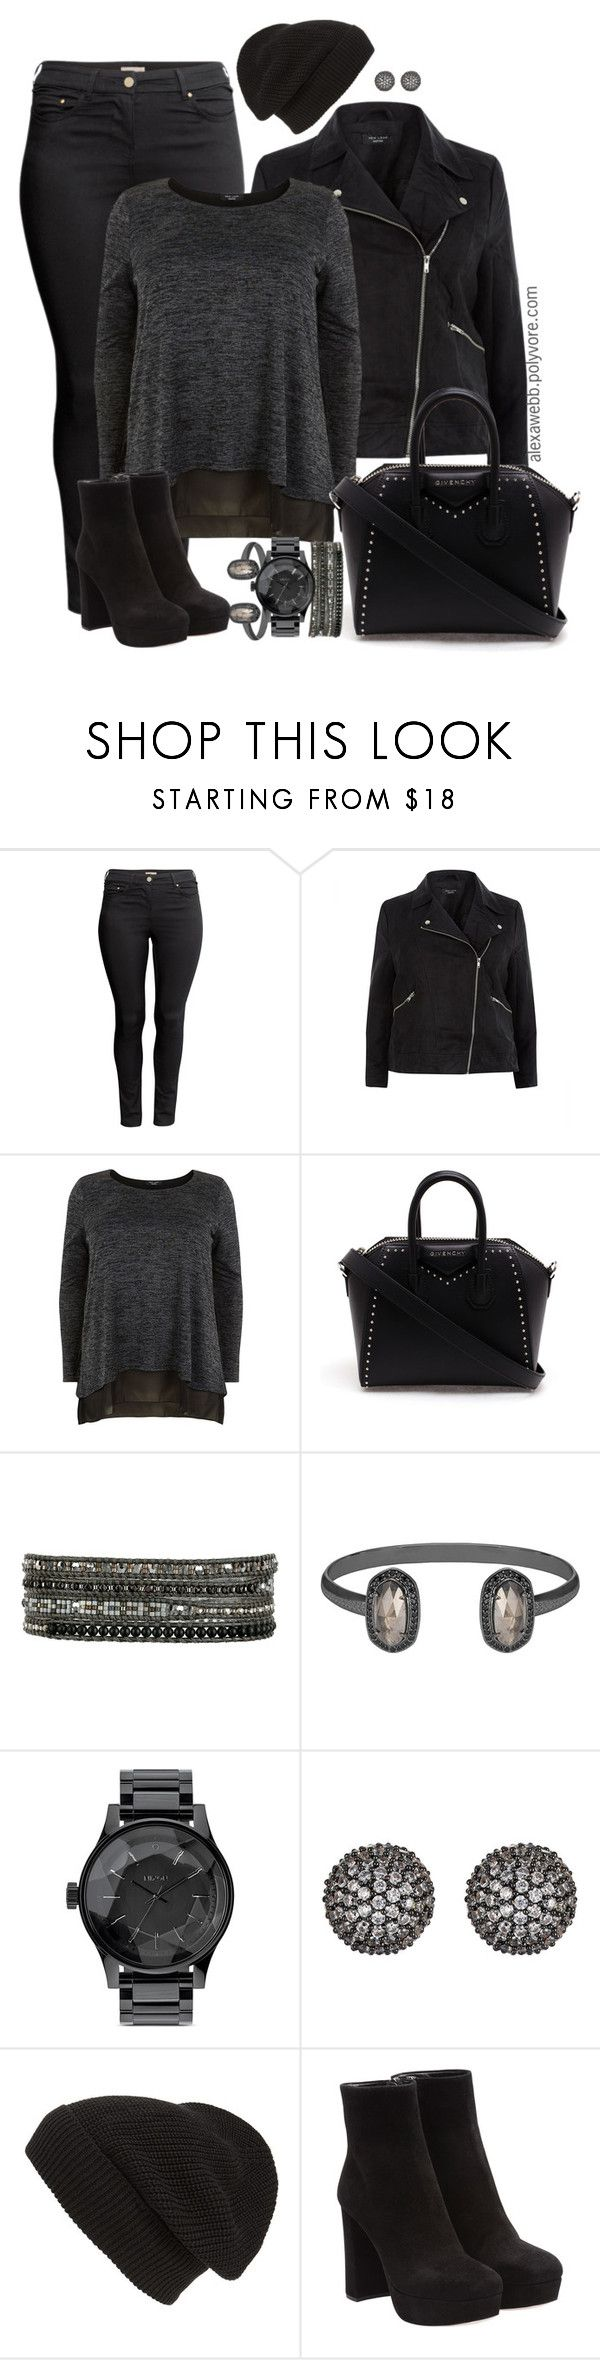 """""""Plus Size - All Black Everything"""" by alexawebb ❤ liked on Polyvore featuring H&M, Givenchy, Chan Luu, Kendra Scott, Nixon, Fallon, Phase 3, Miu Miu, outfit and plussize"""